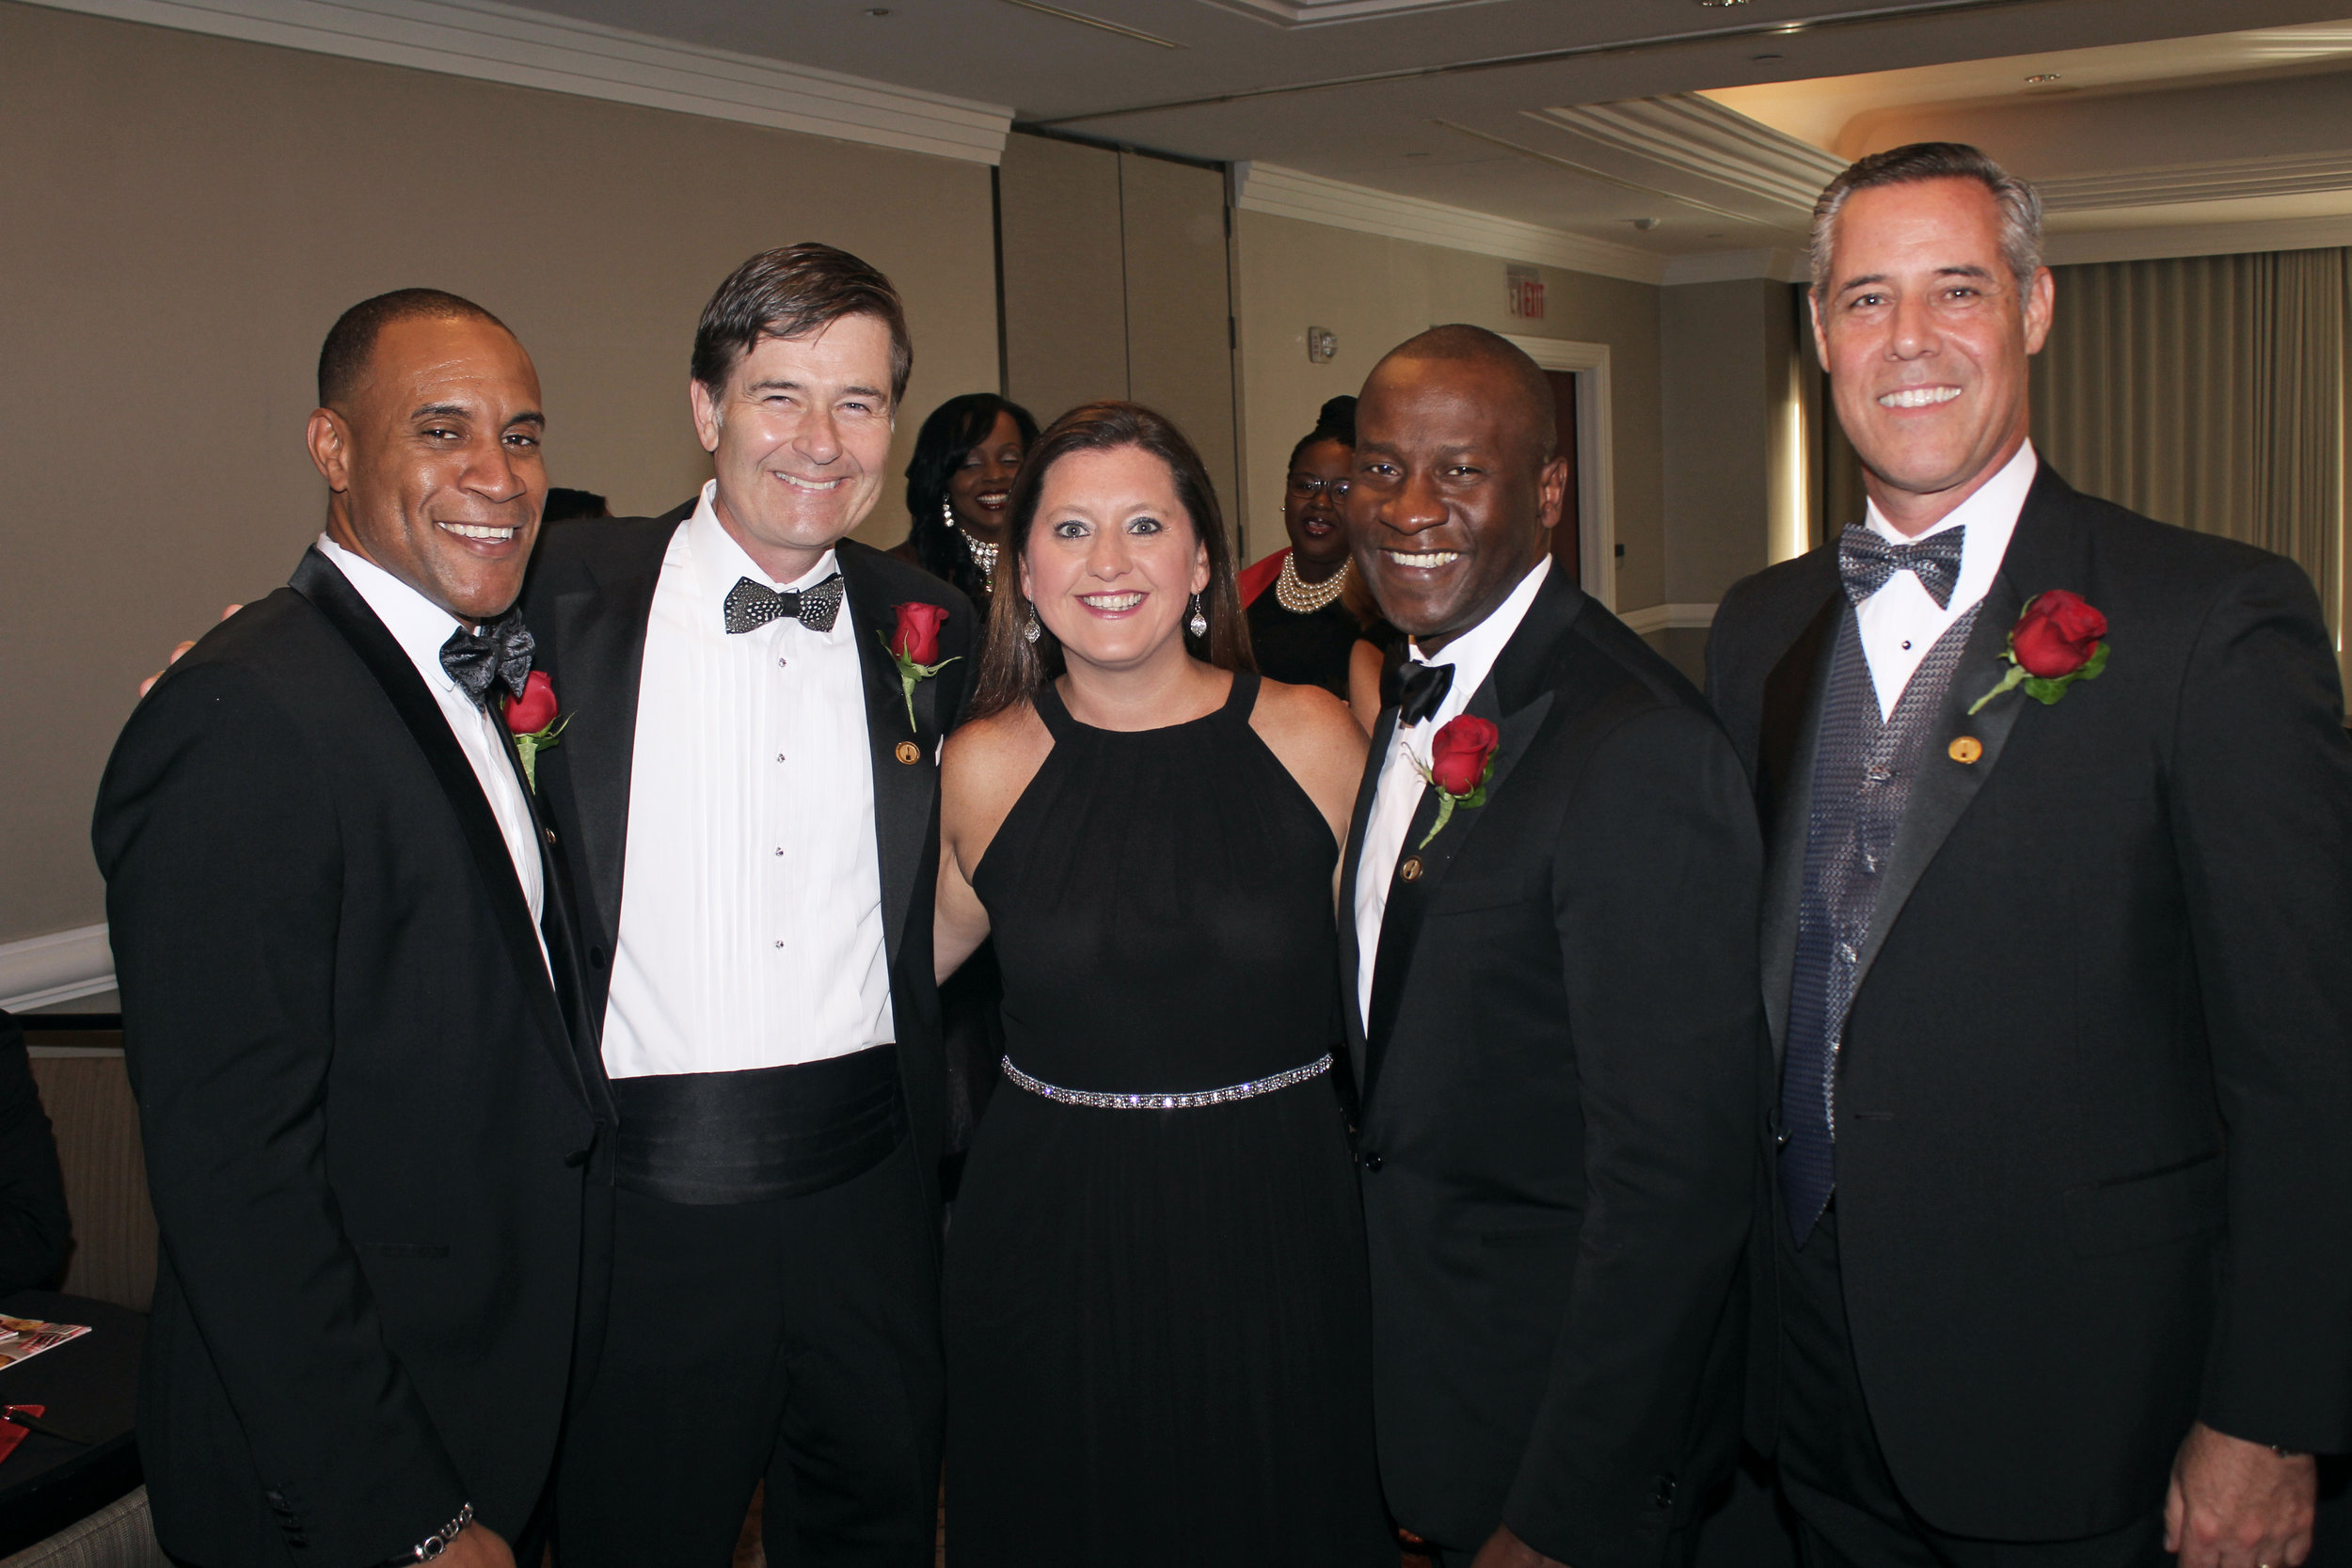 Christina Bickley with the American Diabetes Association in Charlotte surrounded by the Fathers of the Year.